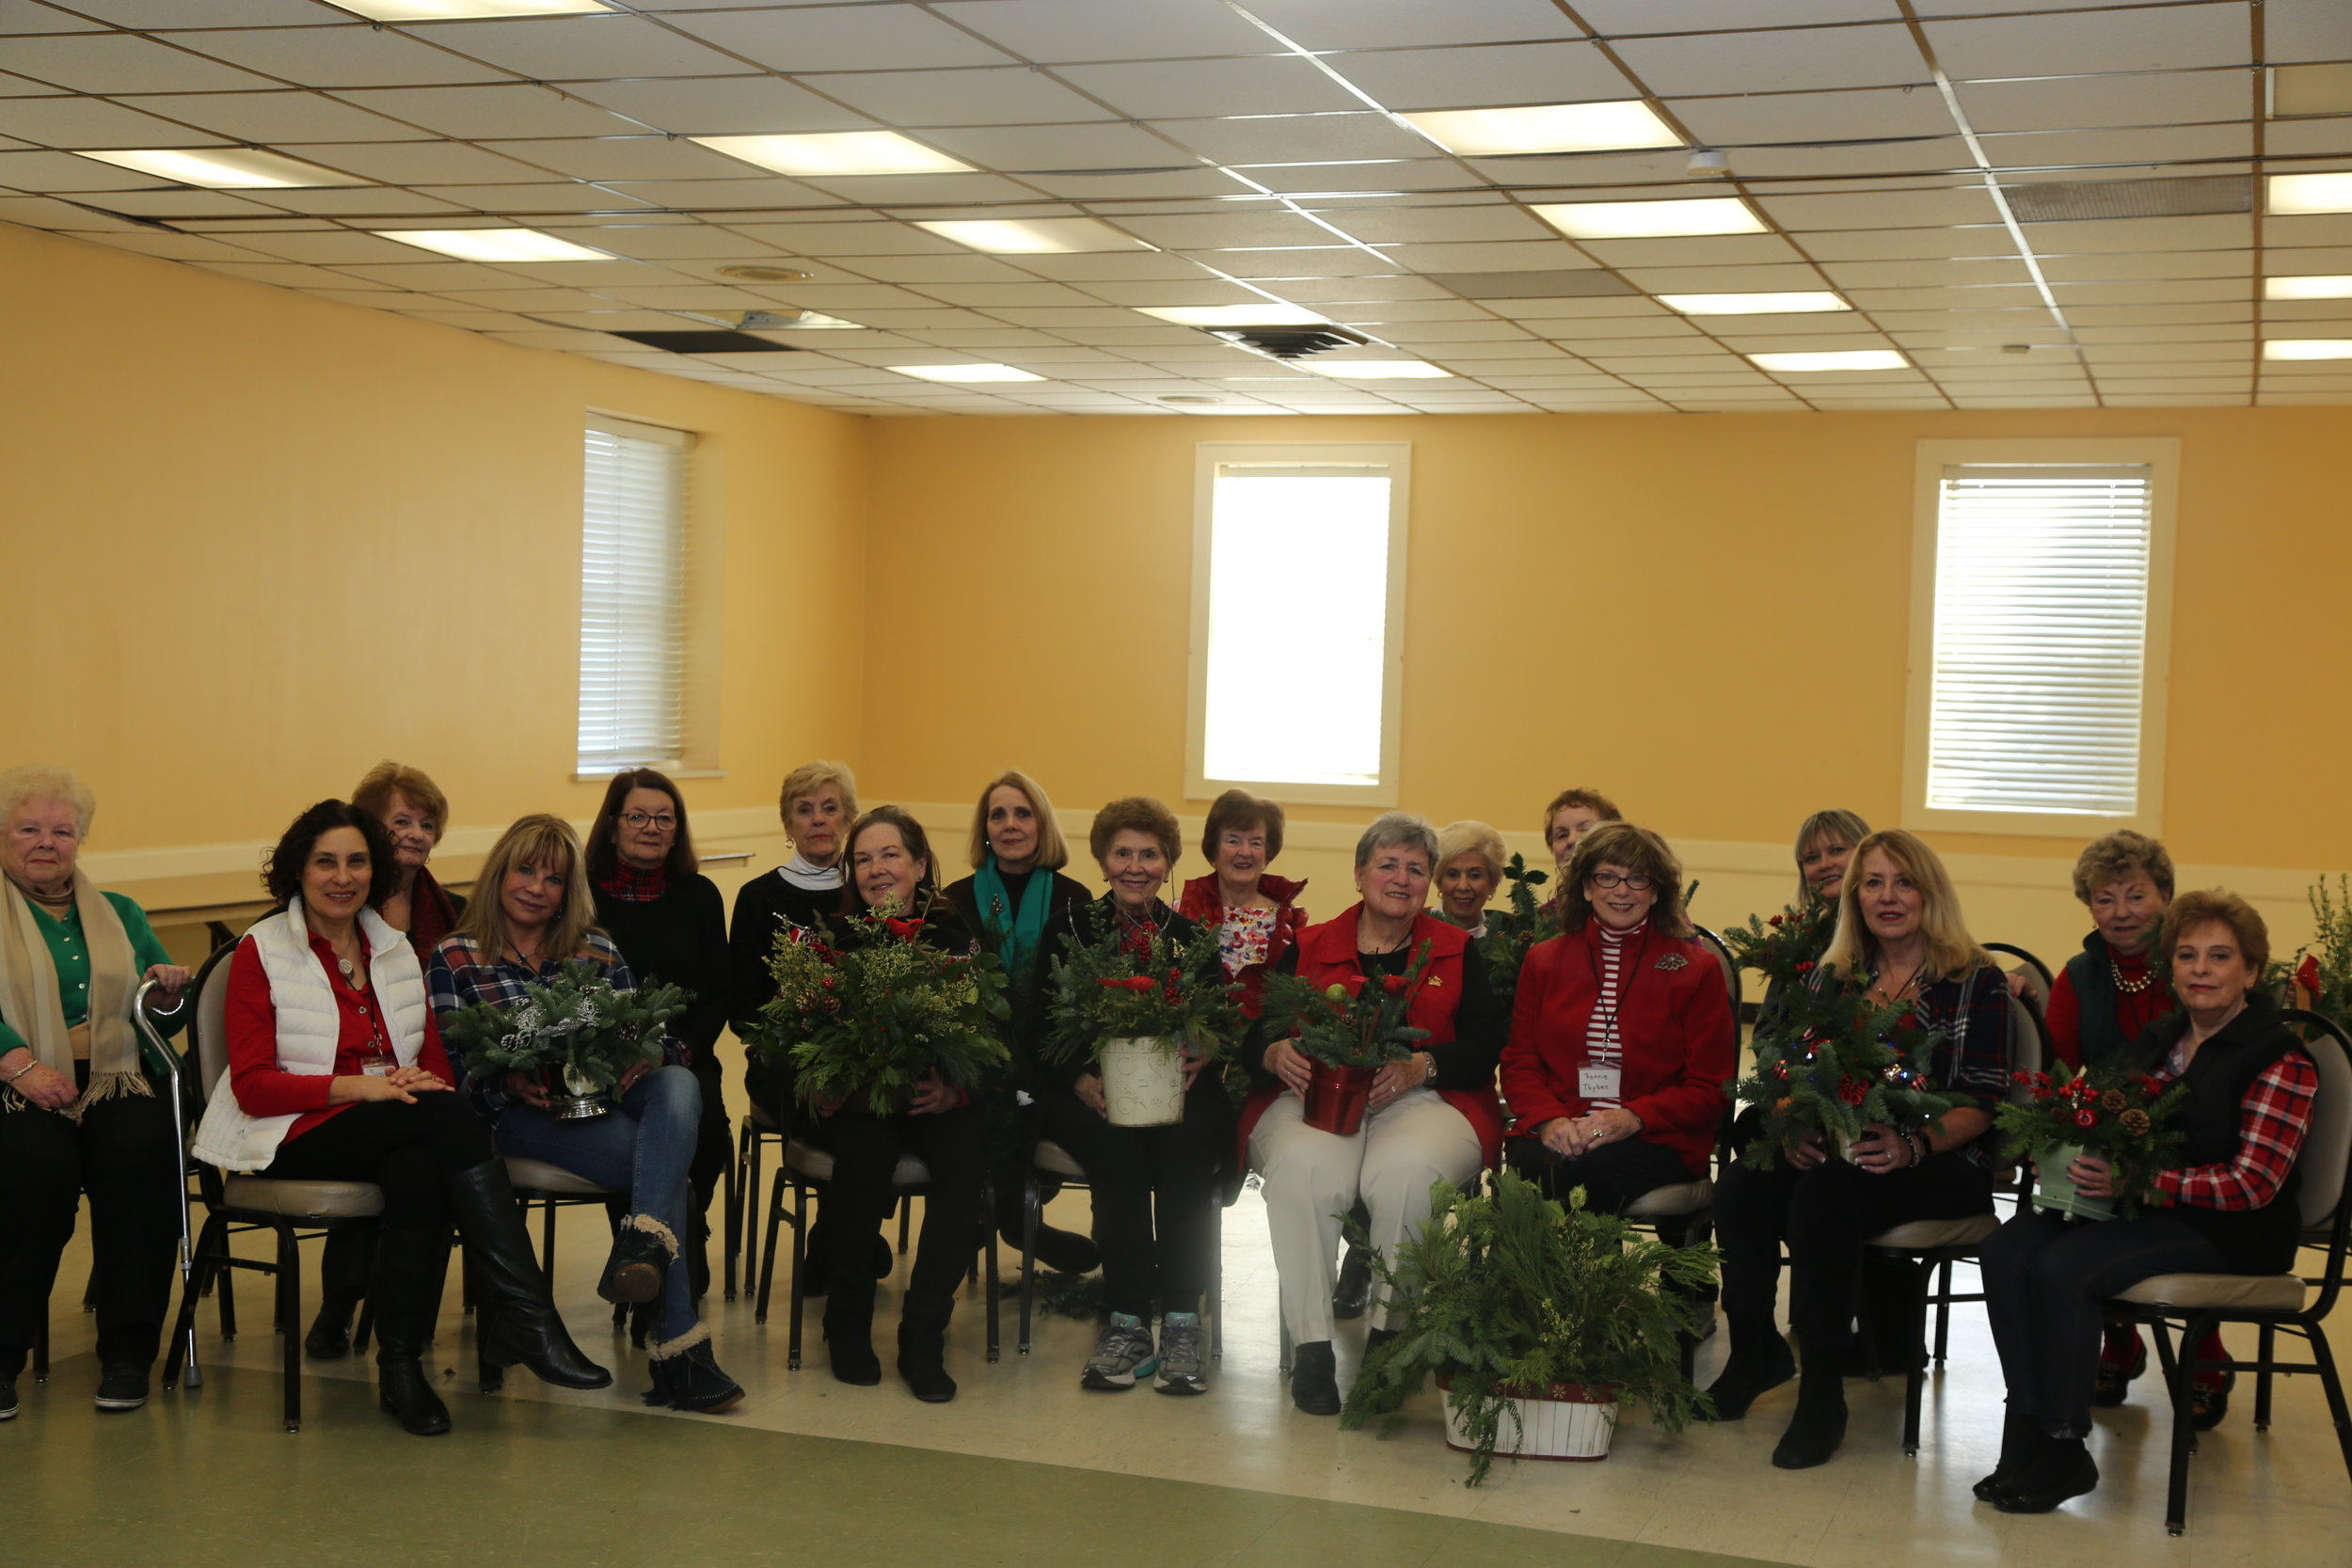 Club members at December, 2018 meeting with some of their holiday arrangements